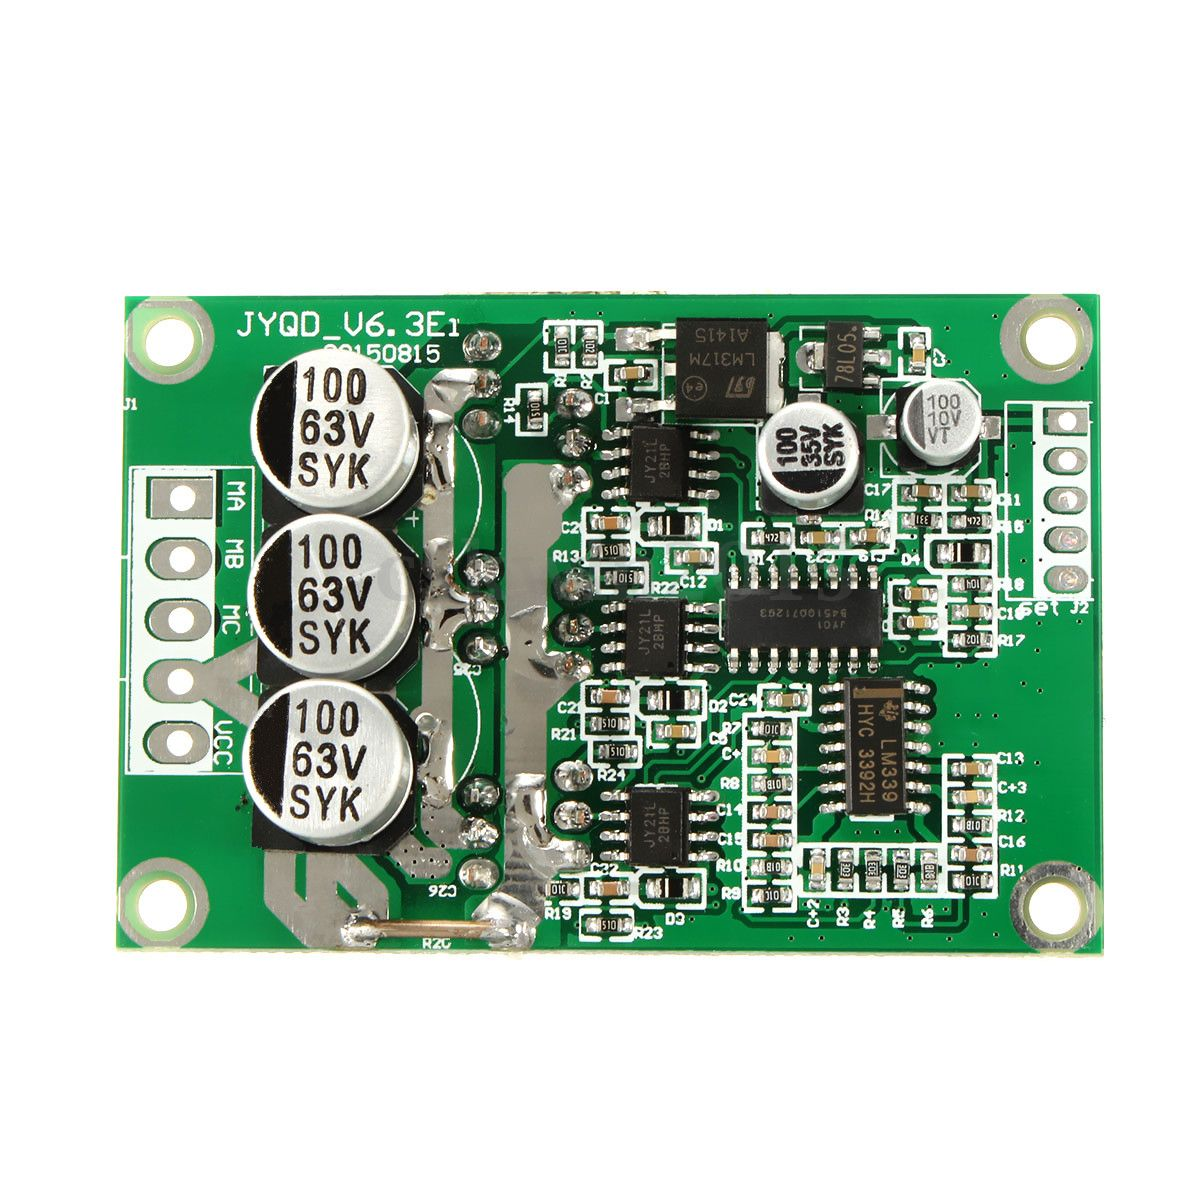 Dc Motor Controller 24v 500w Pwm Control Speed 12v By Tl494 36v Brushless Drive Board Balanced Car Bldc